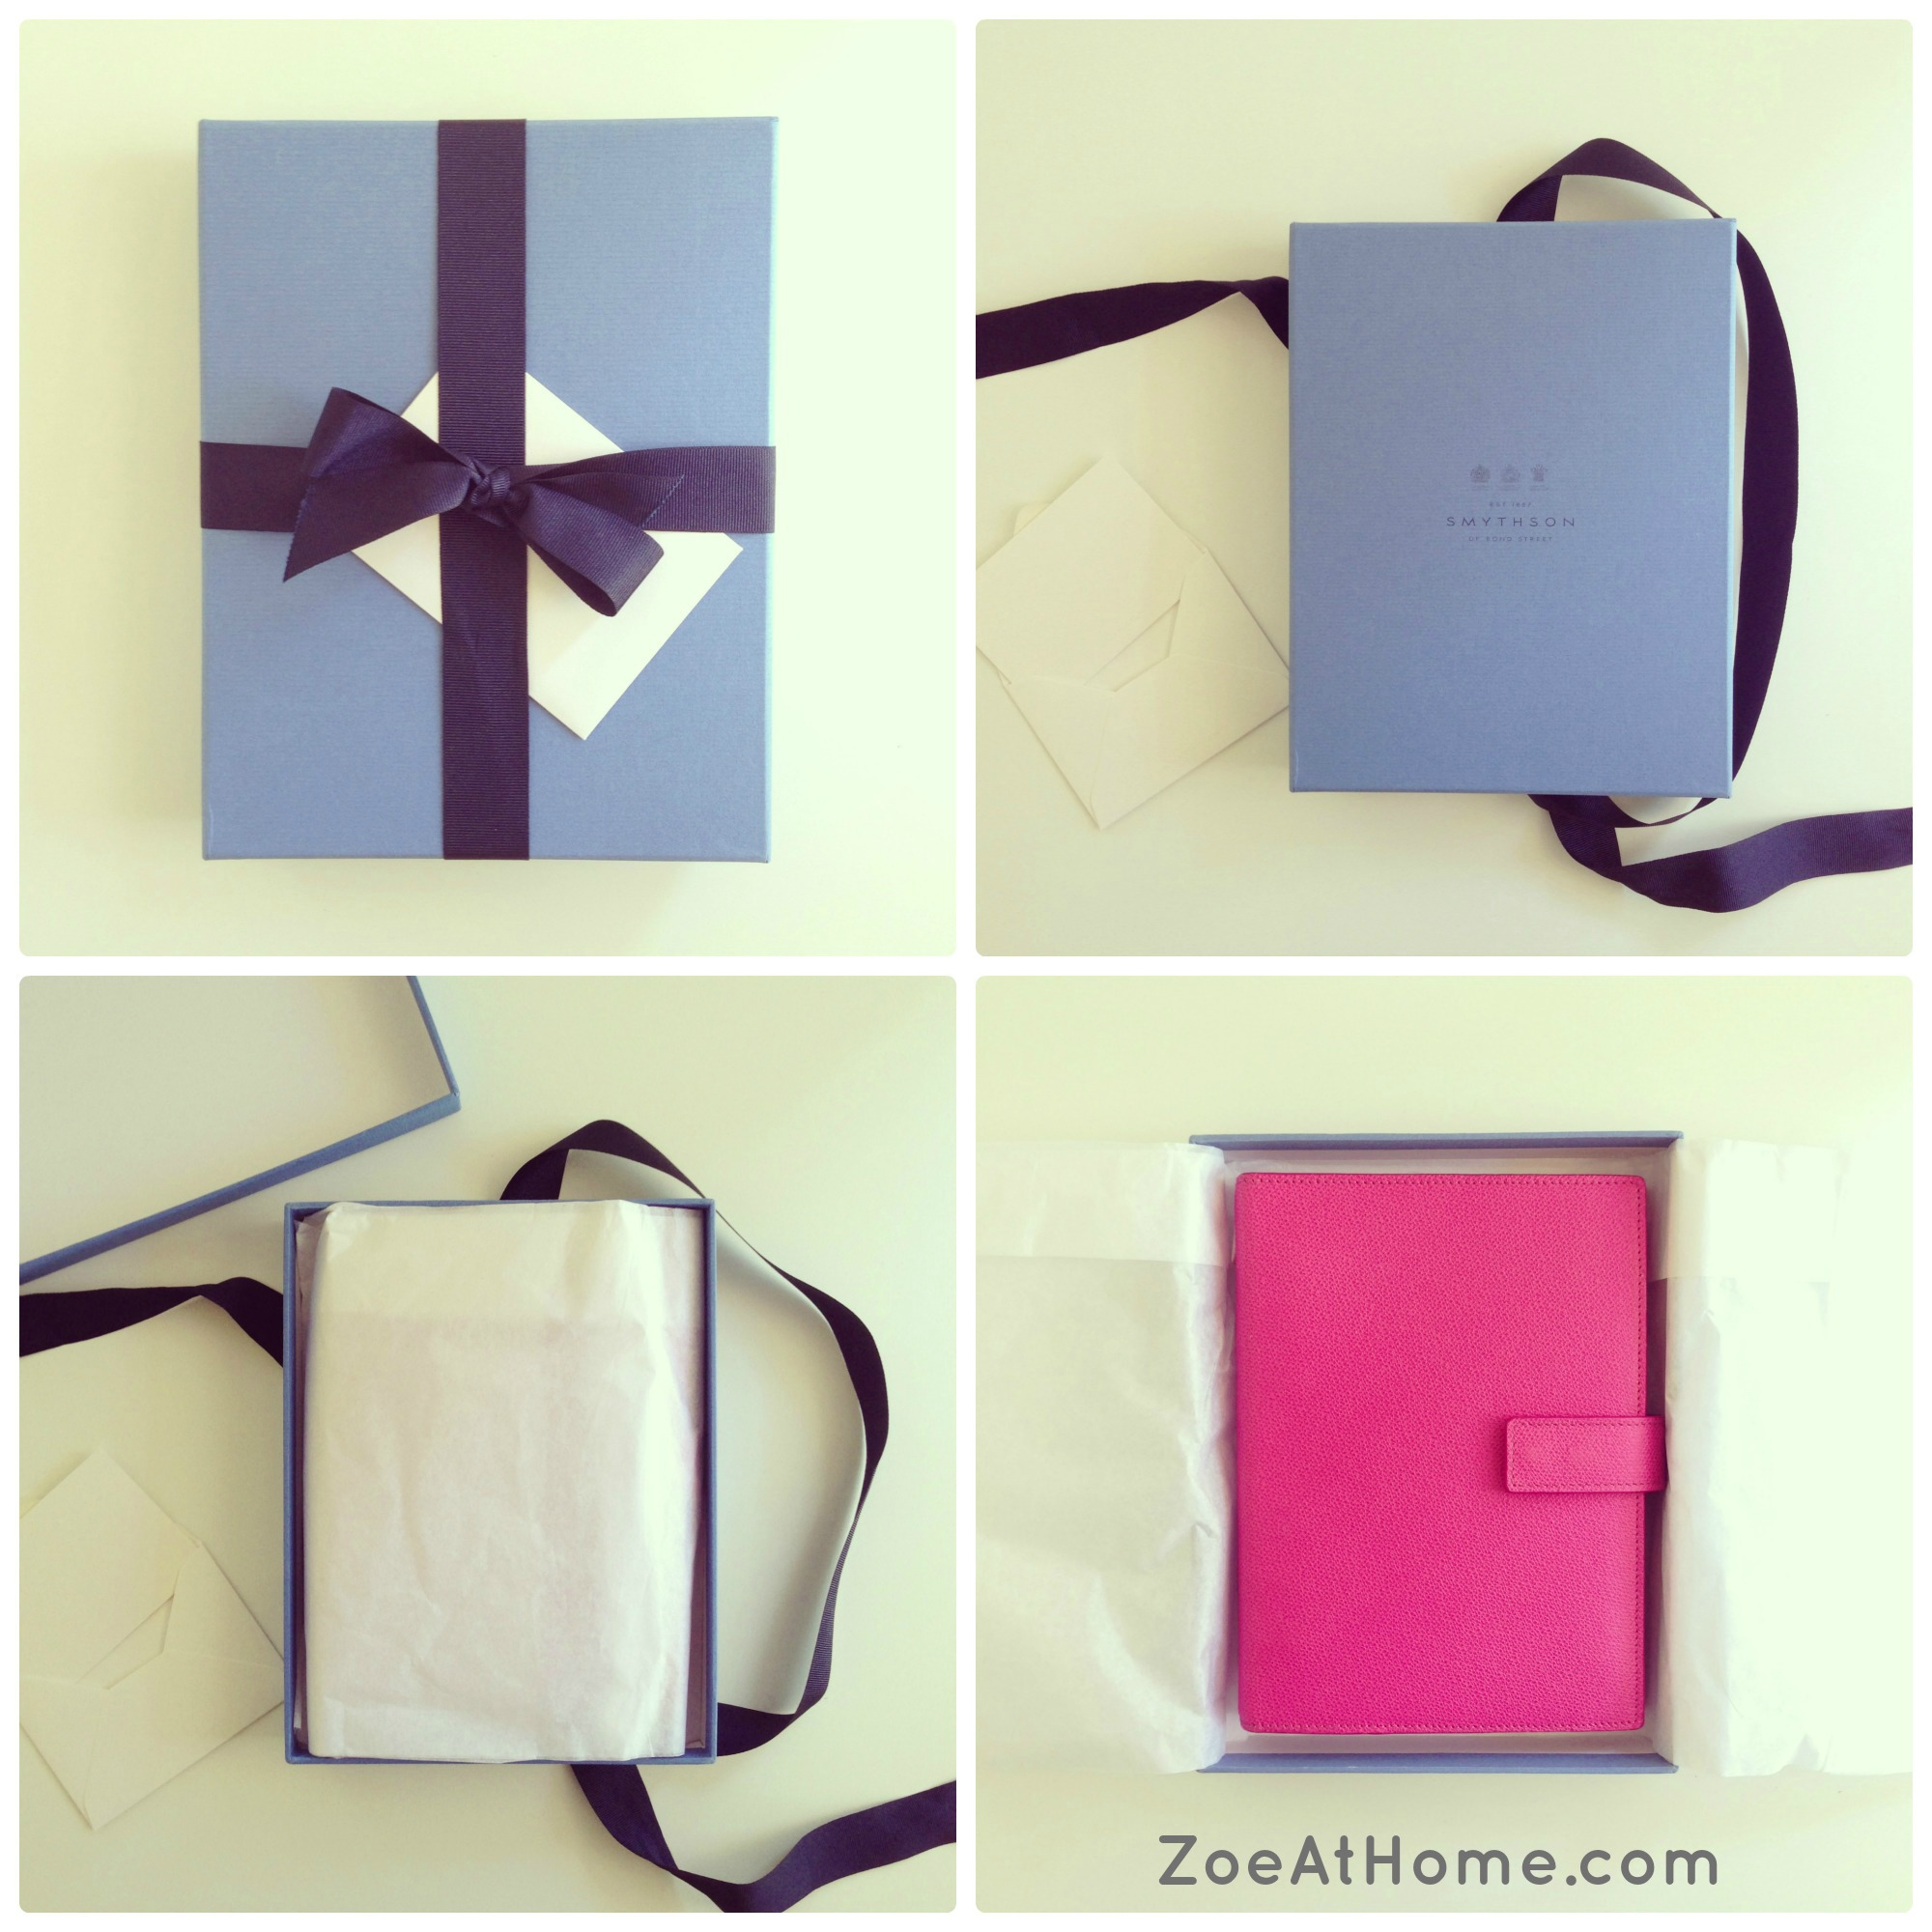 revealed my new pink smythson organiser zoeathome com